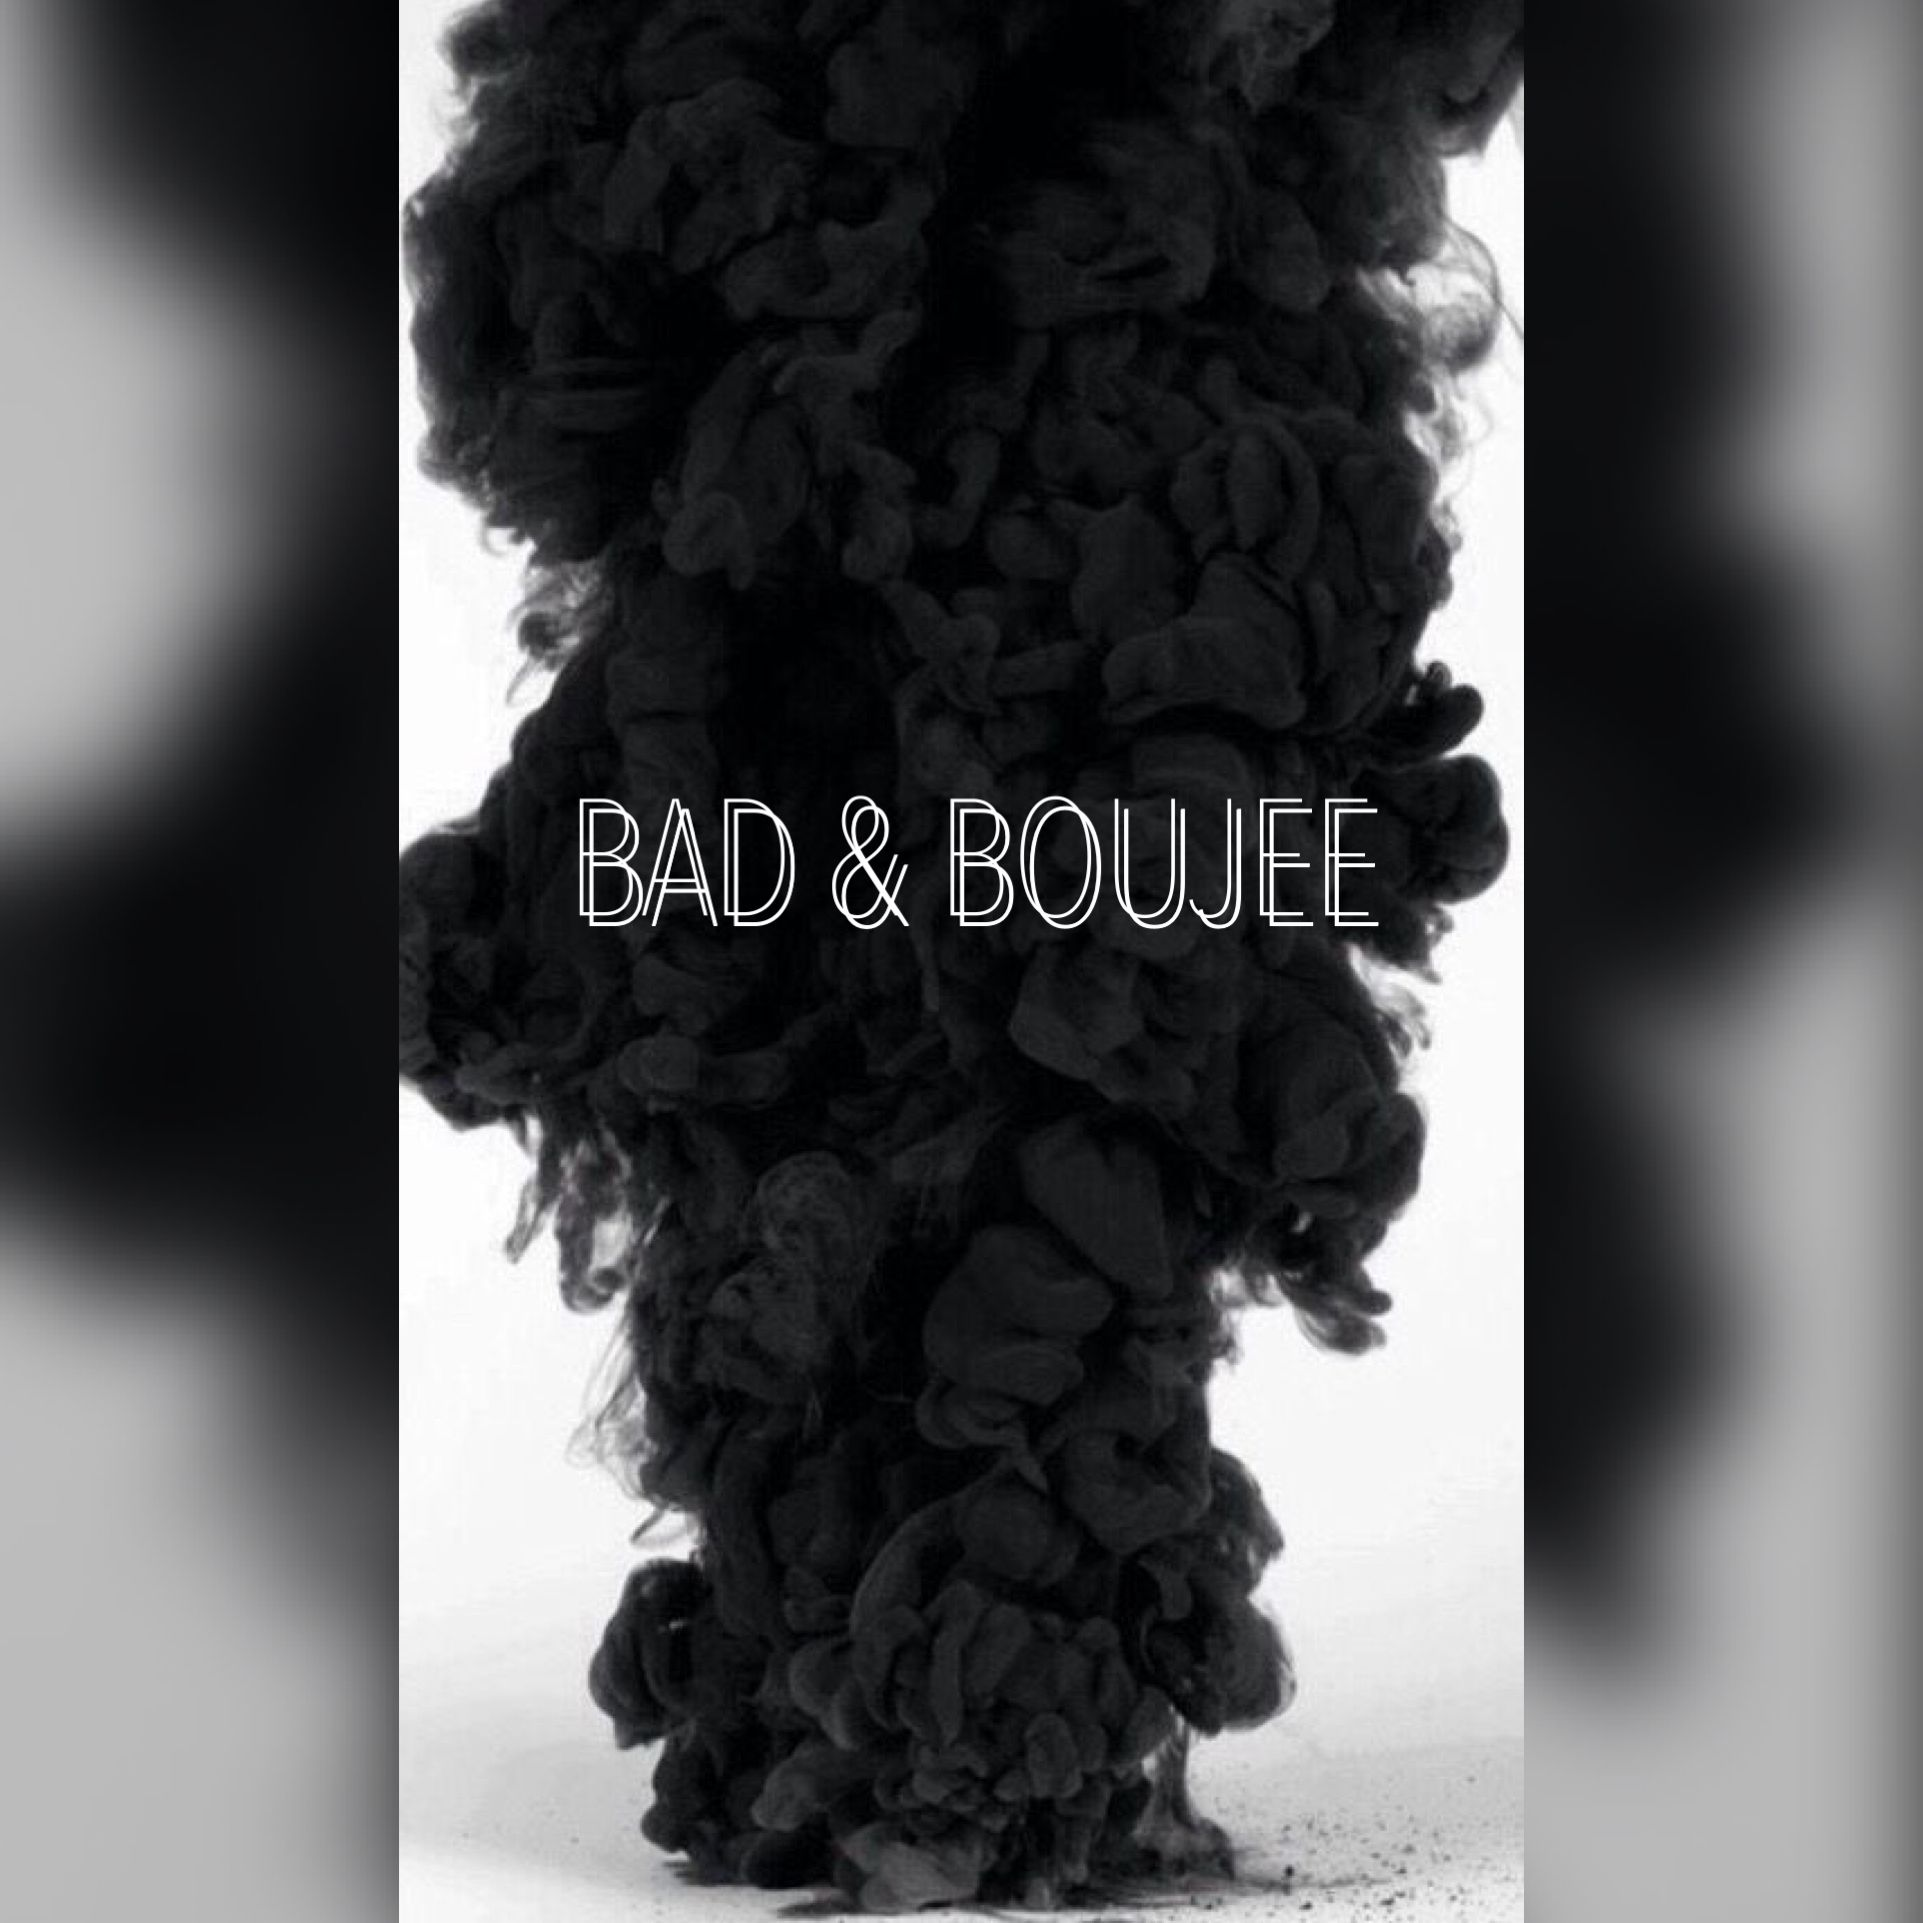 Bad And Boujee Wallpaper Bad And Boujee Aesthetic Pastel